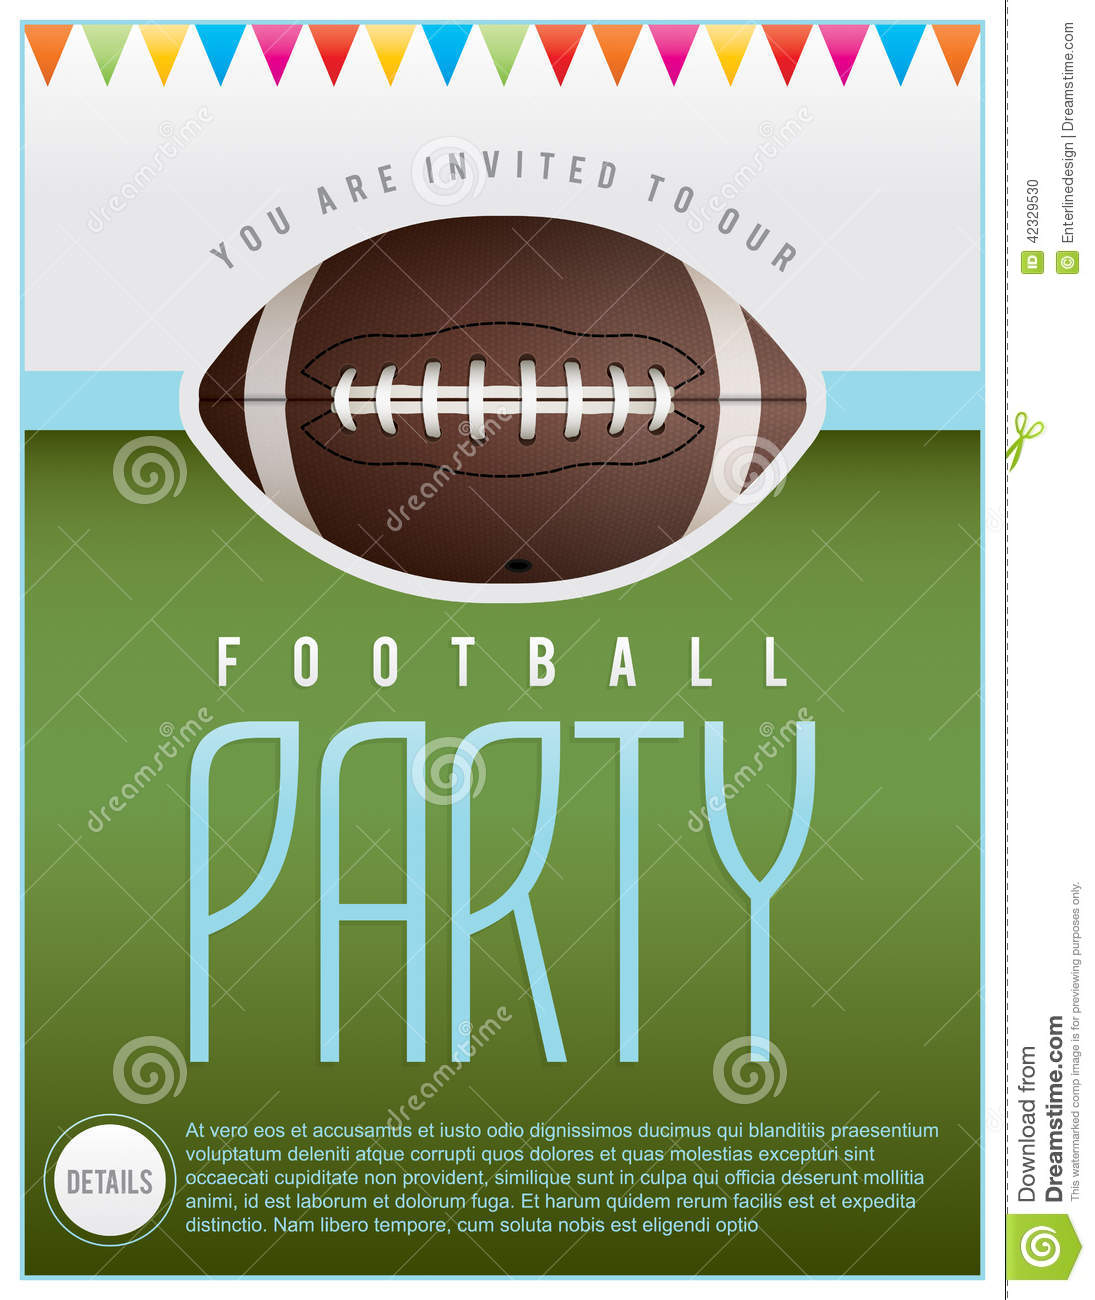 Football Party Flyer Stock Vector - Image: 42329530